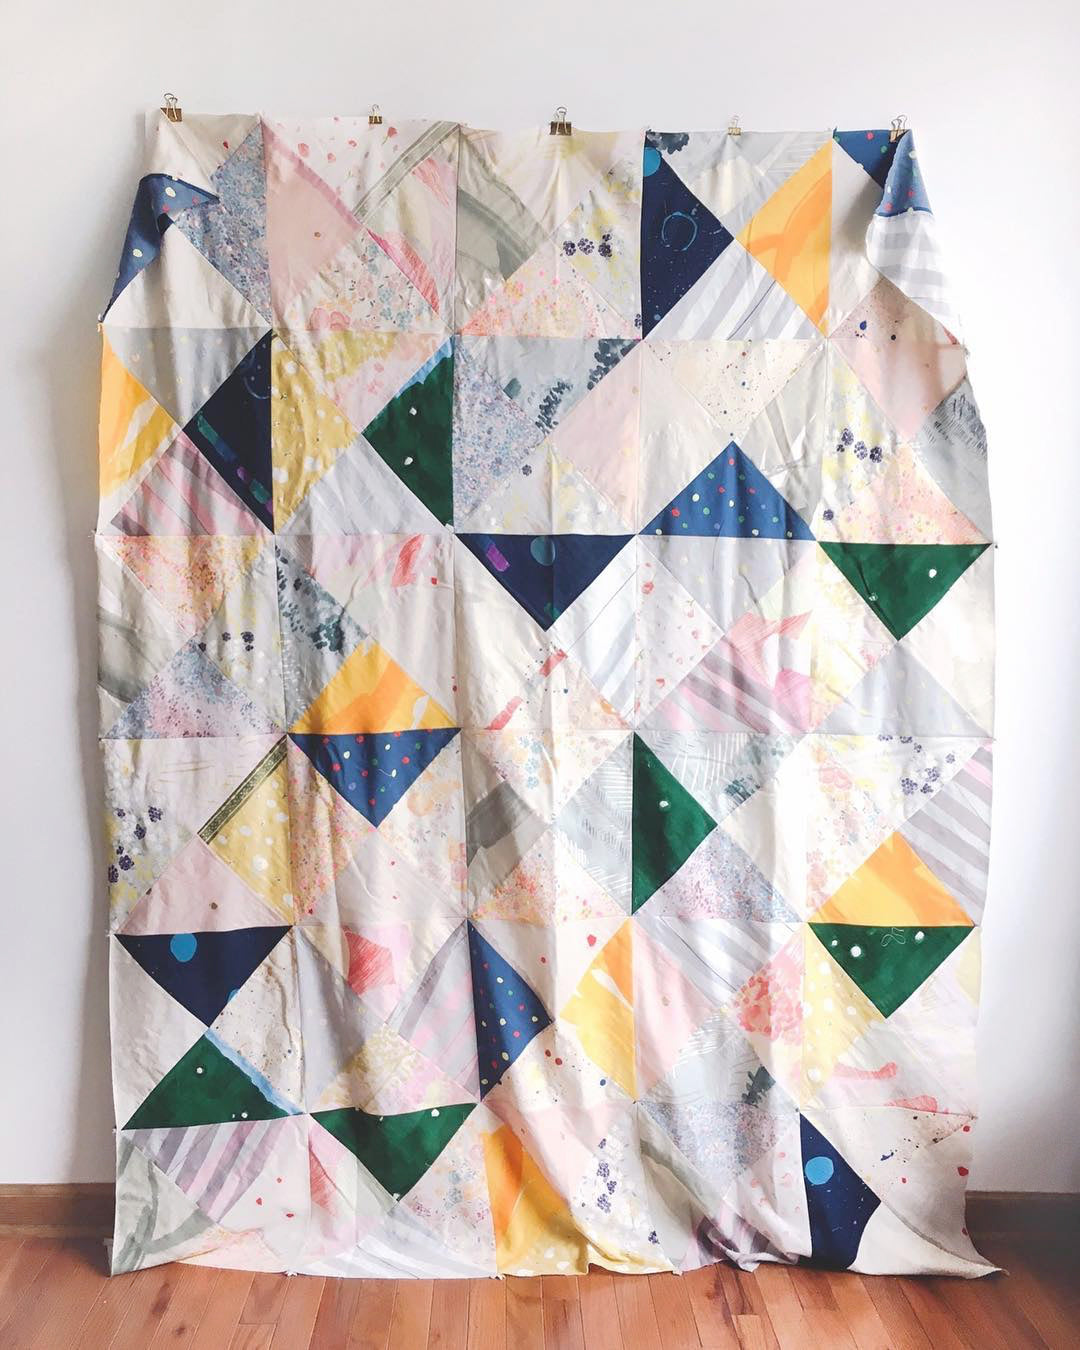 Life Lately v04 | Nani Iro Quilt | Grainline Studio